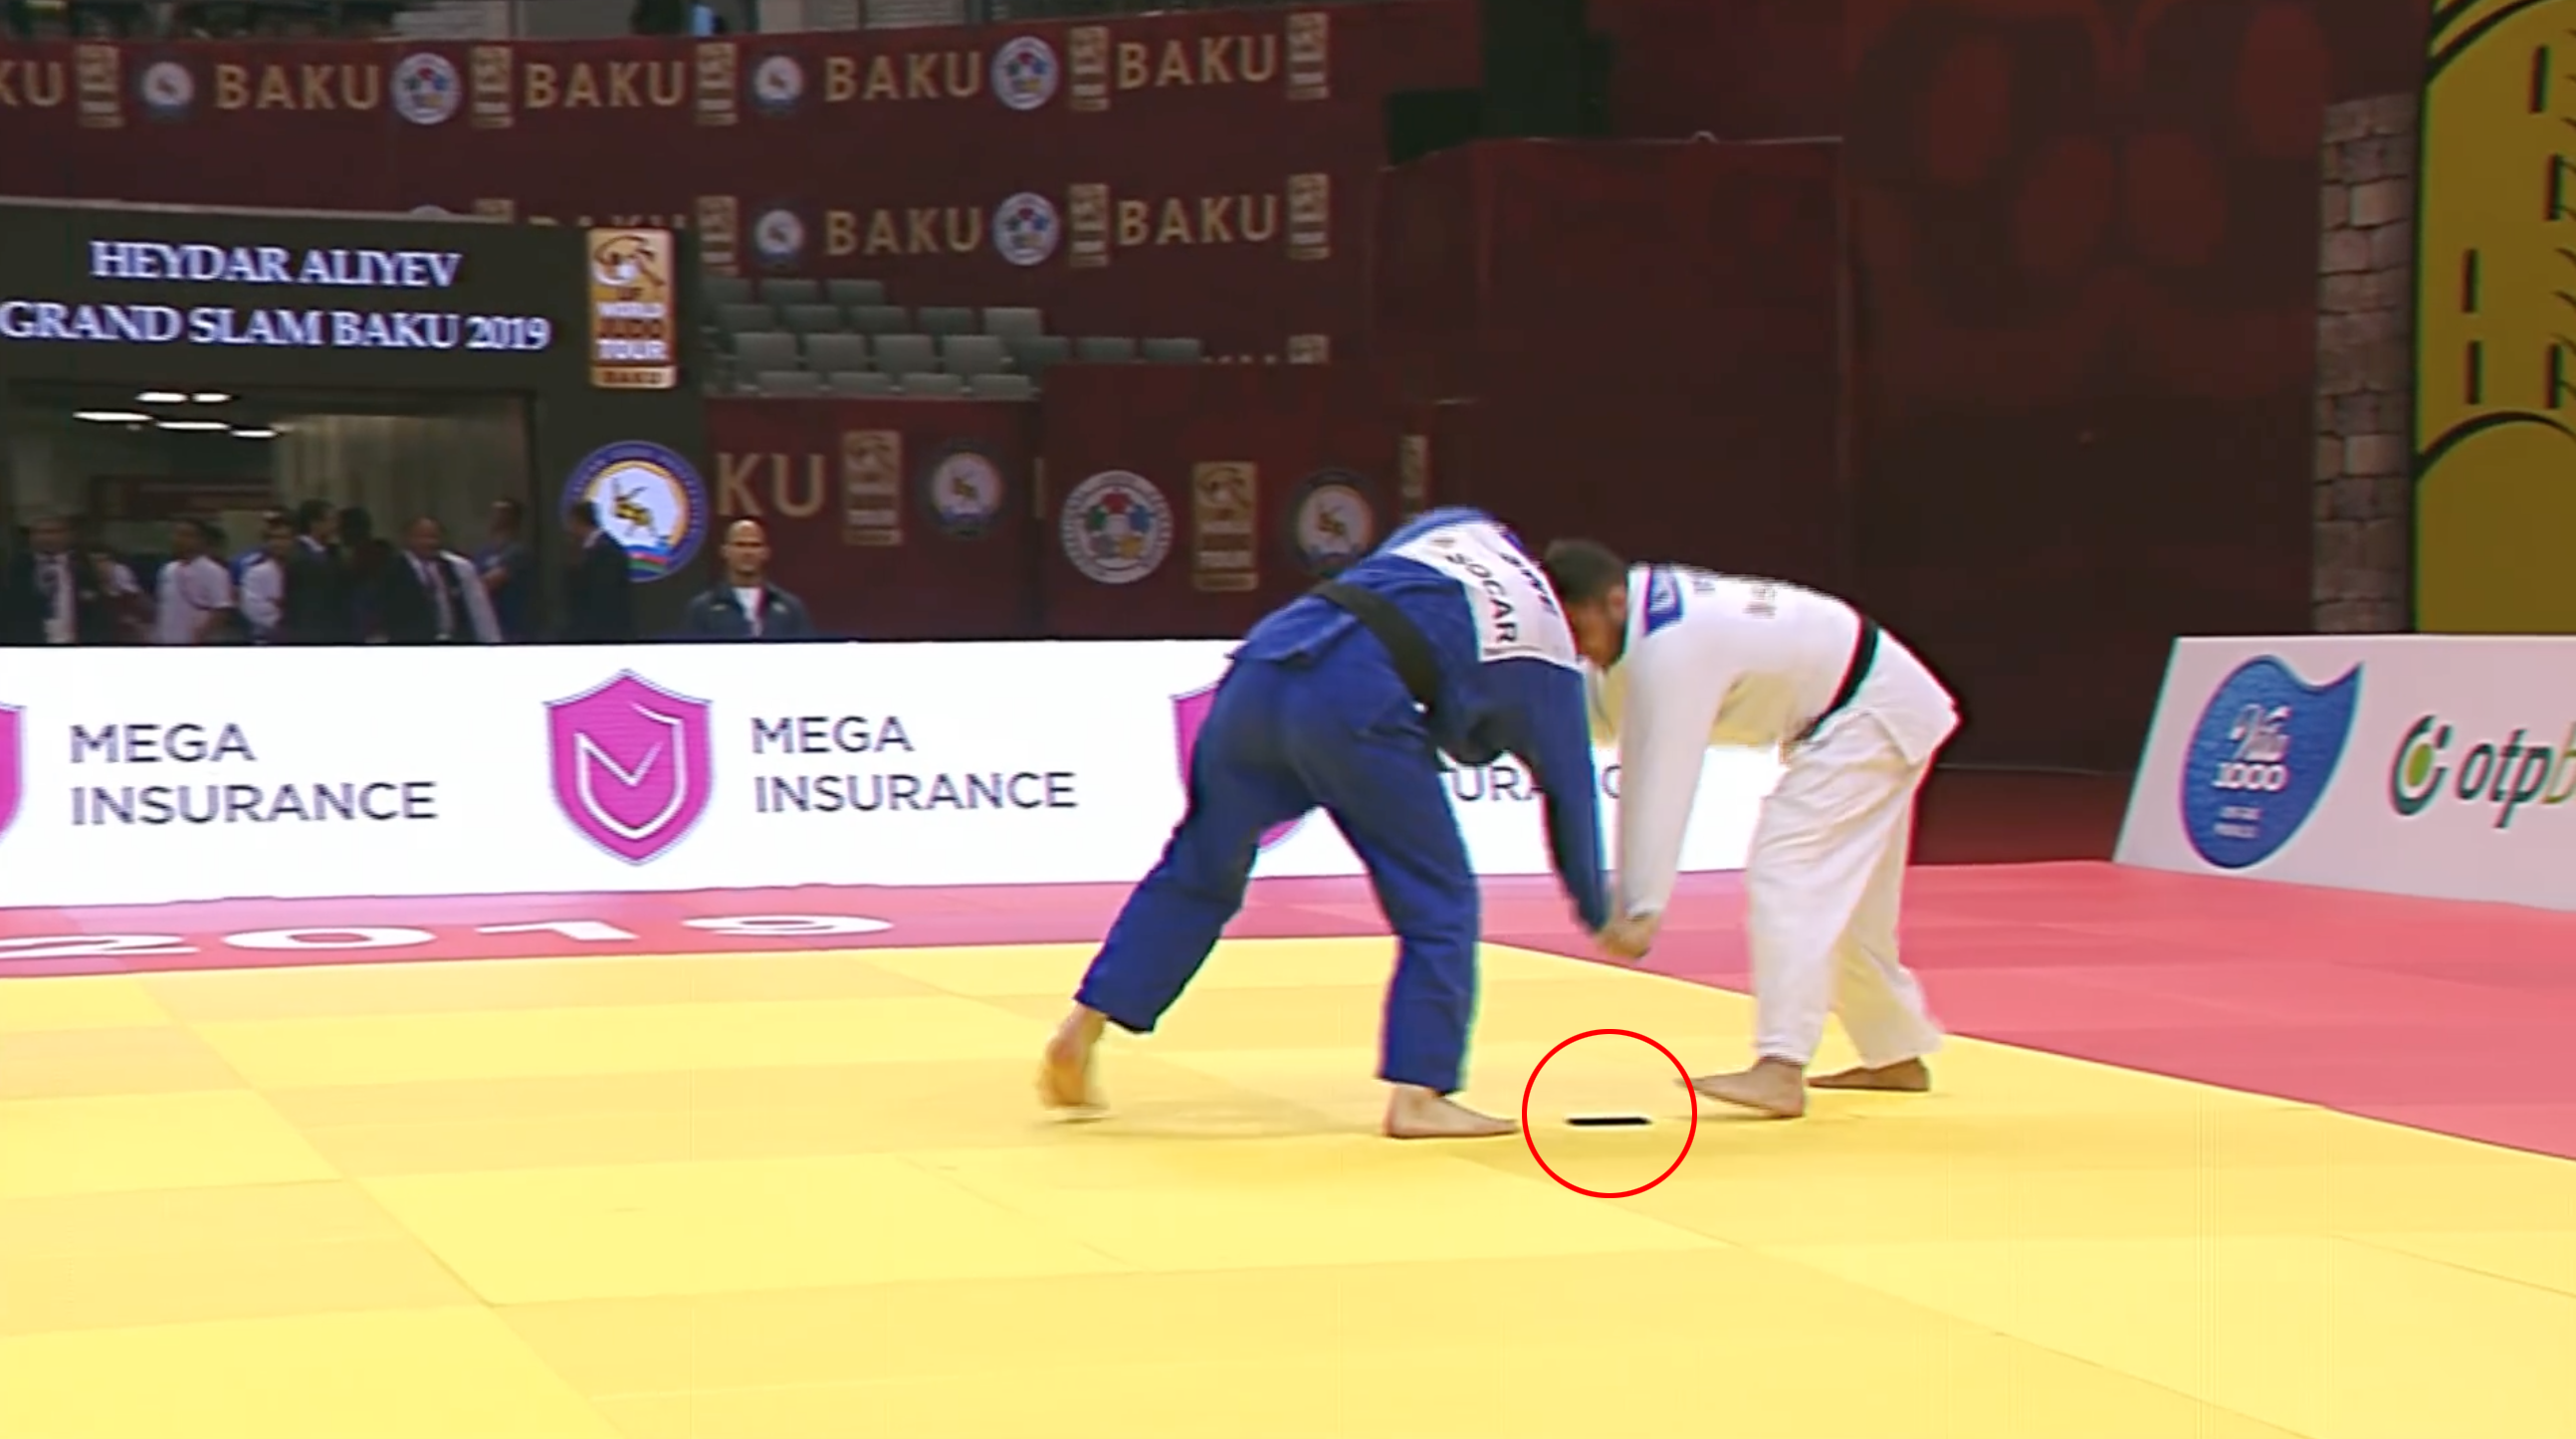 Judo: Anri Egutidze drops phone at Baku Grand Slam (video)